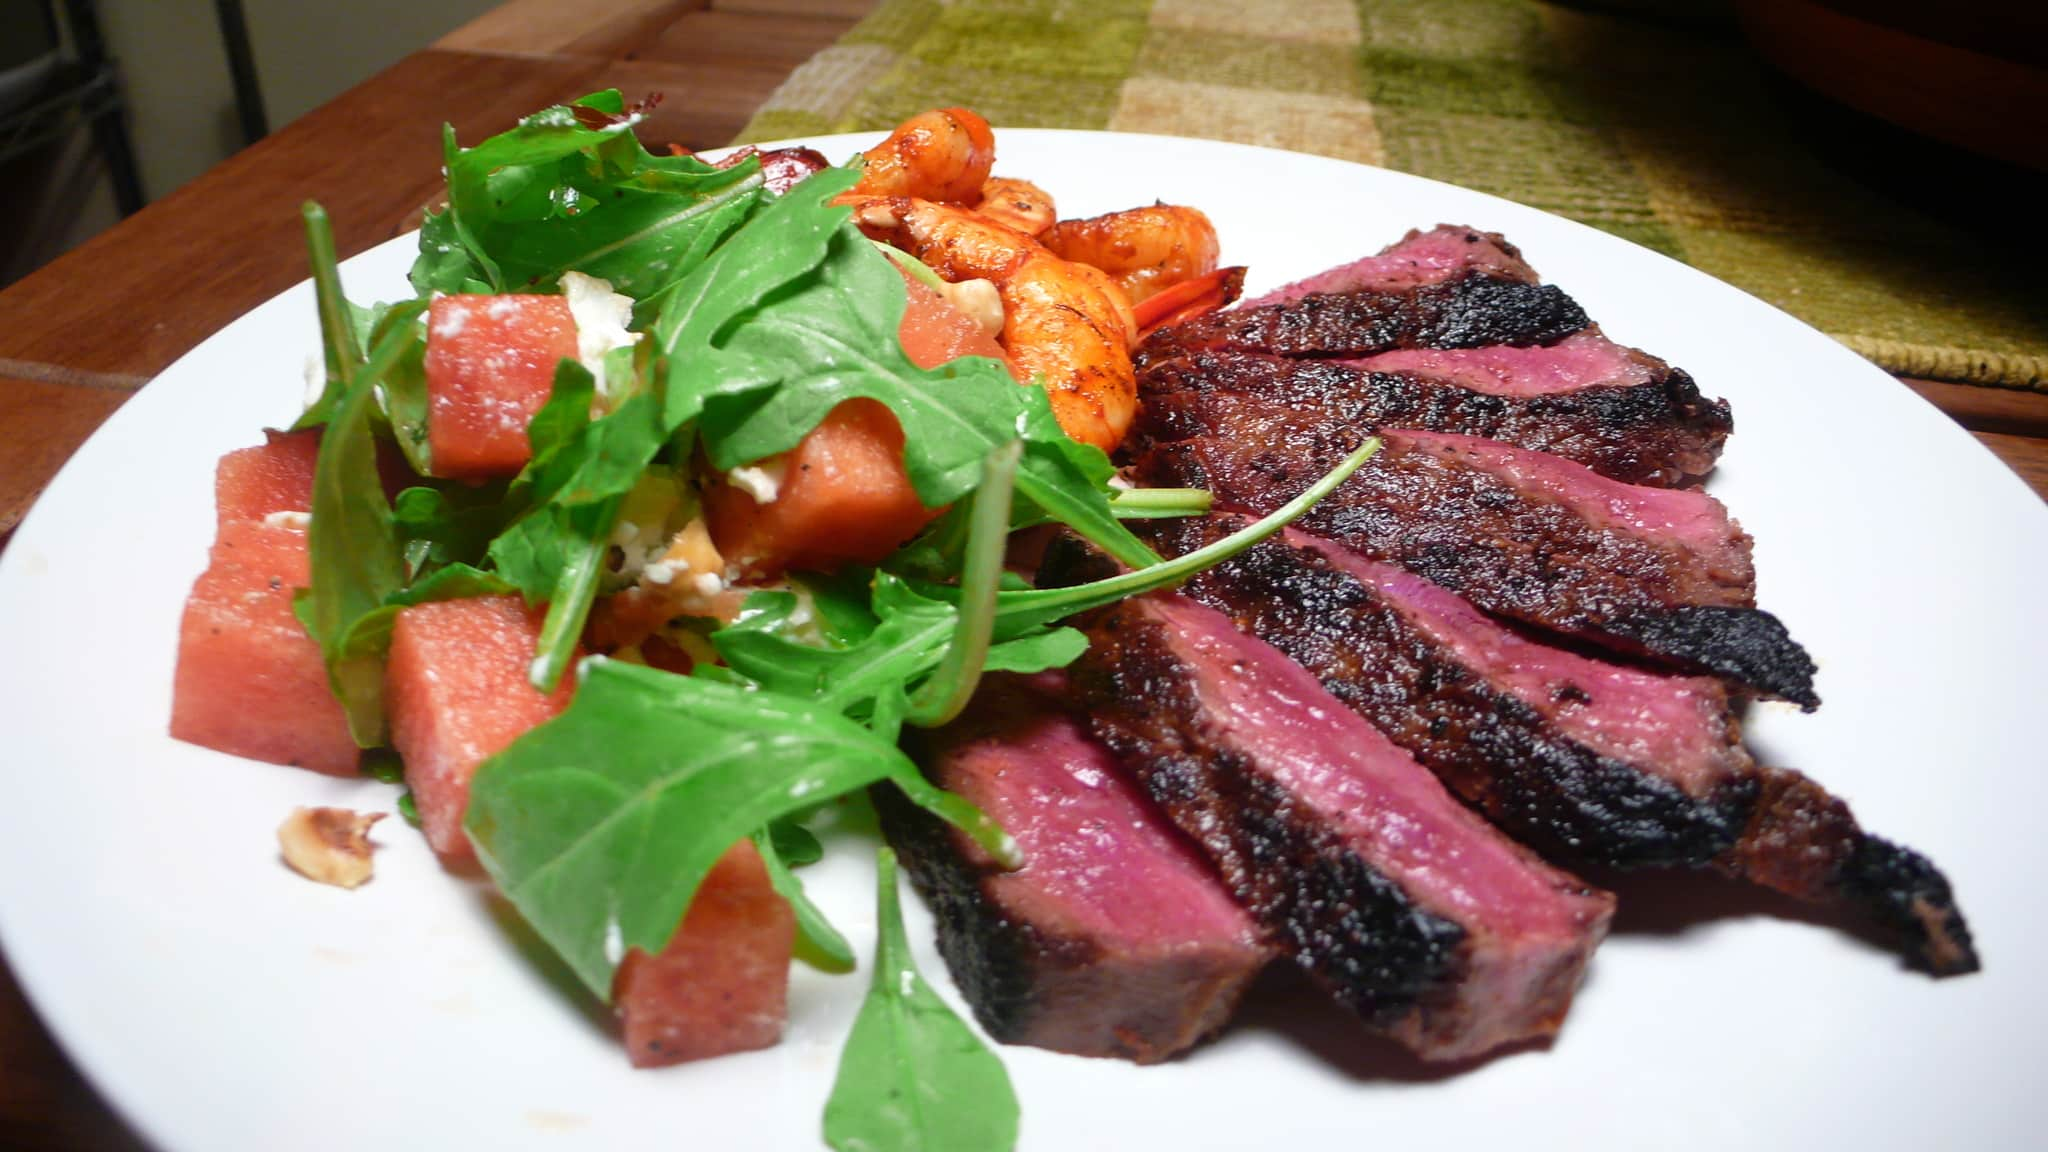 Susan's Dry Rubbed Steak & Shrimp with Watermelon Salad Quick Weeknight Meals Recipe Contest 2009: gallery image 2